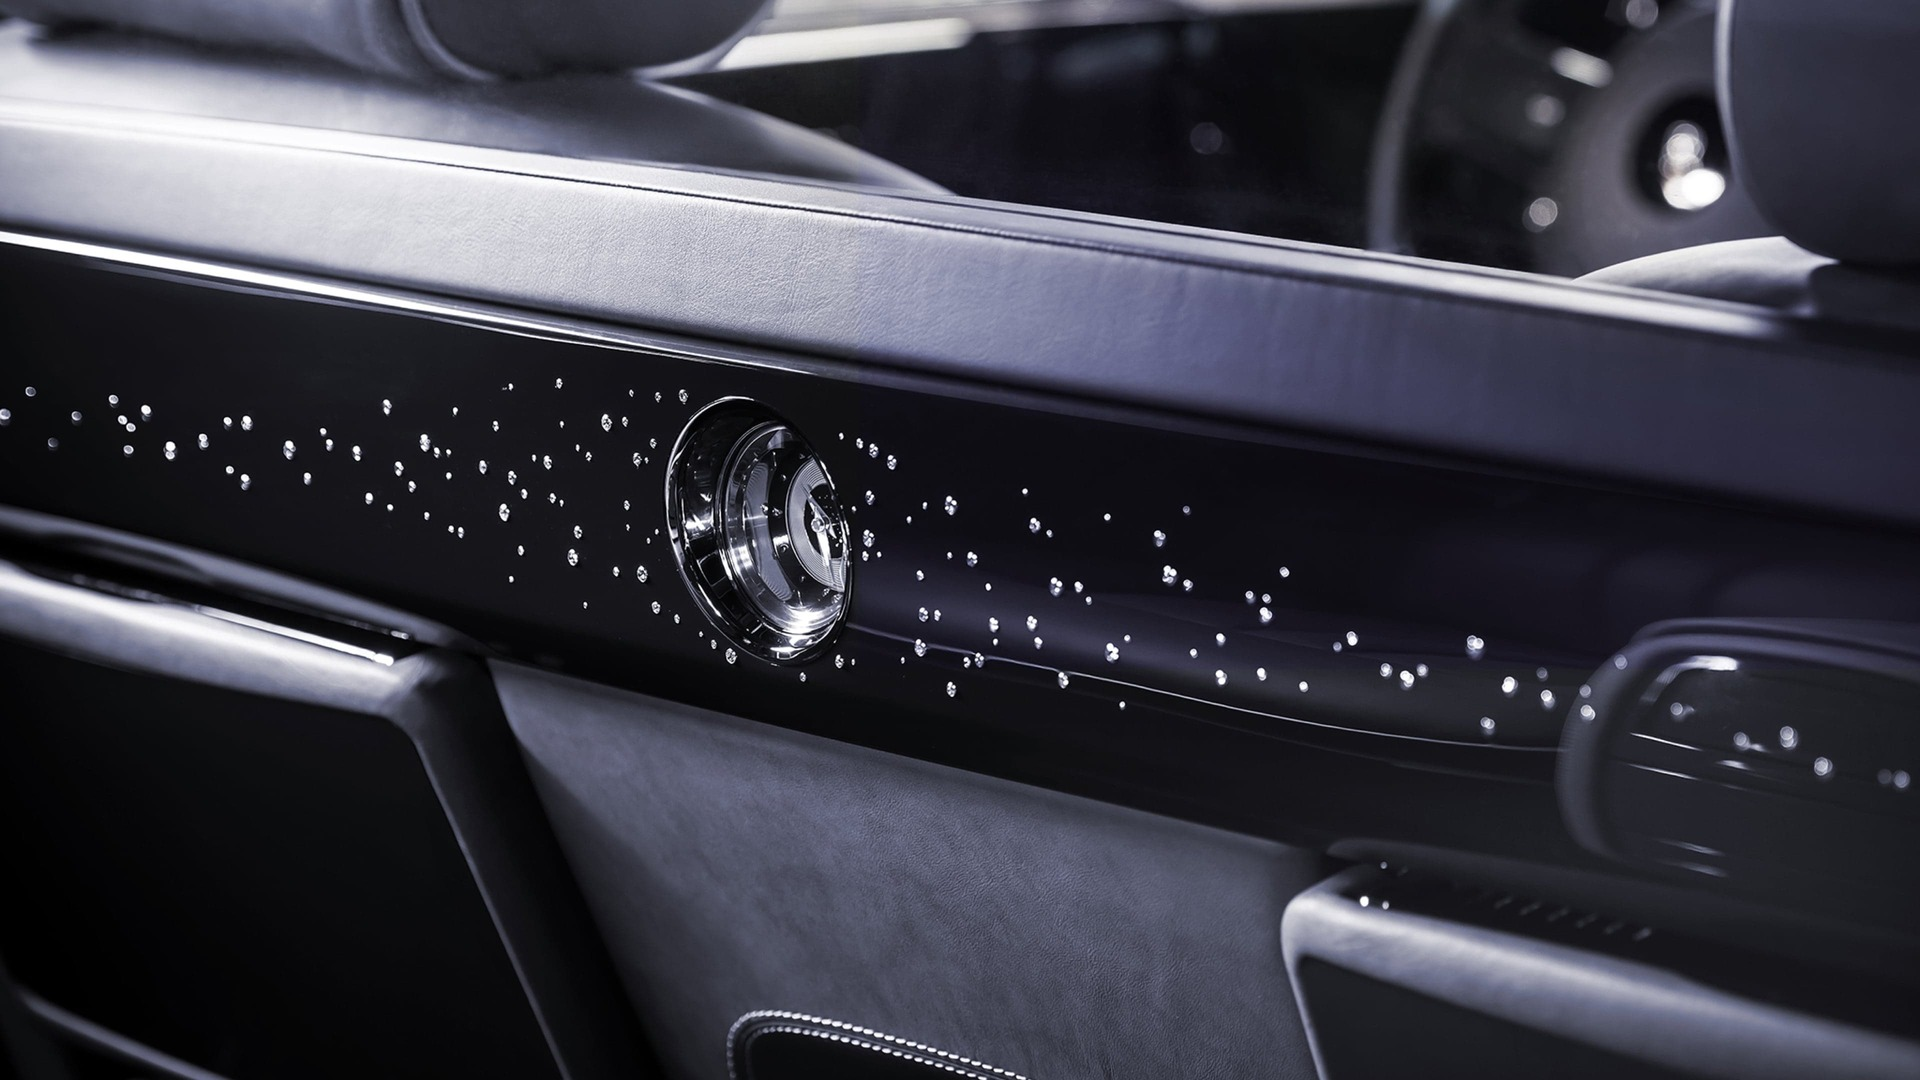 Close up interior shot of Rolls-Royce Phantom